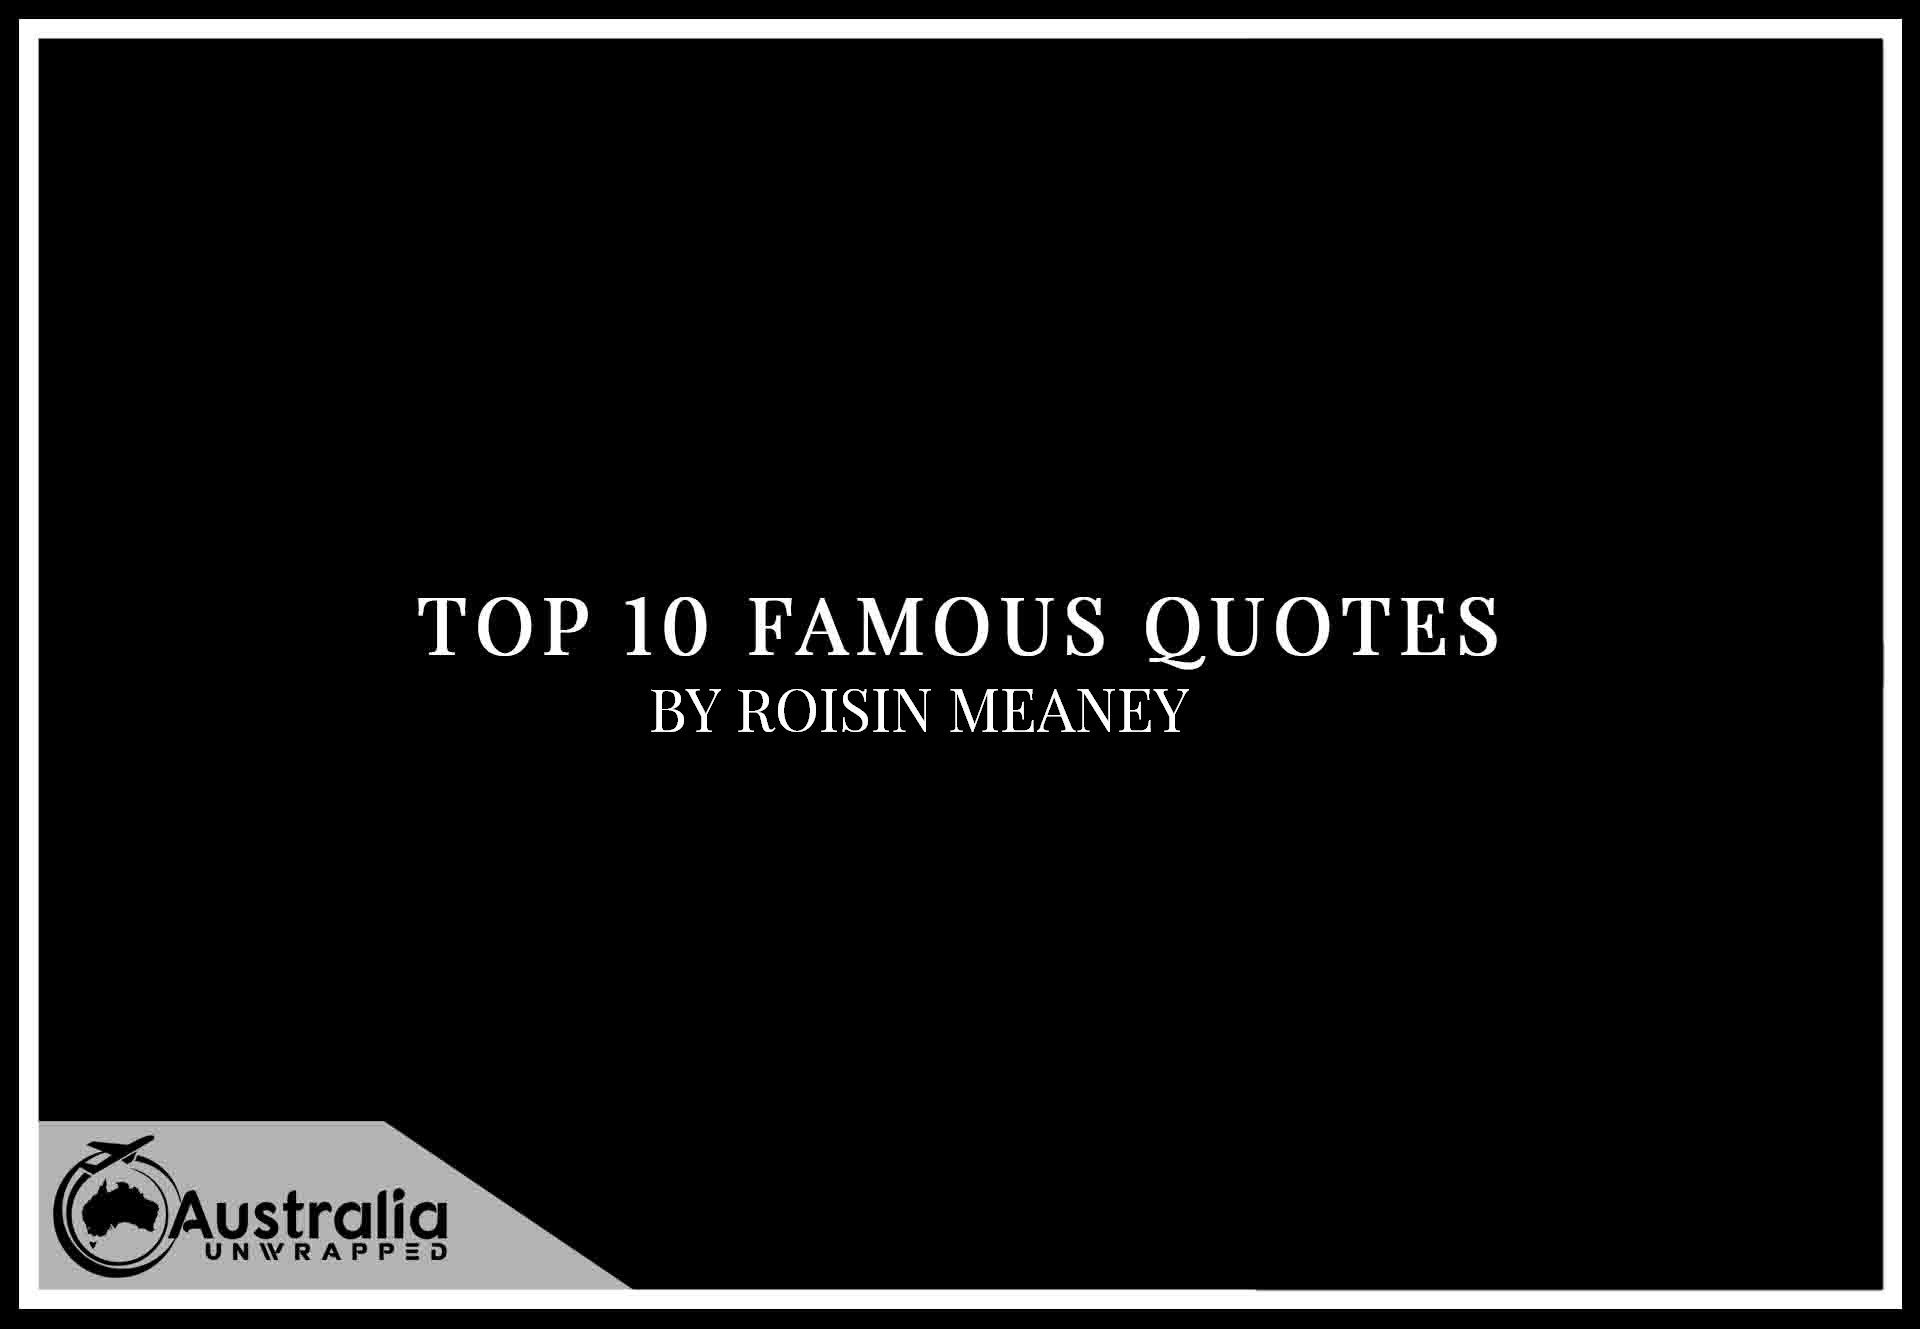 Top 10 Famous Quotes by Author Roisin Meaney